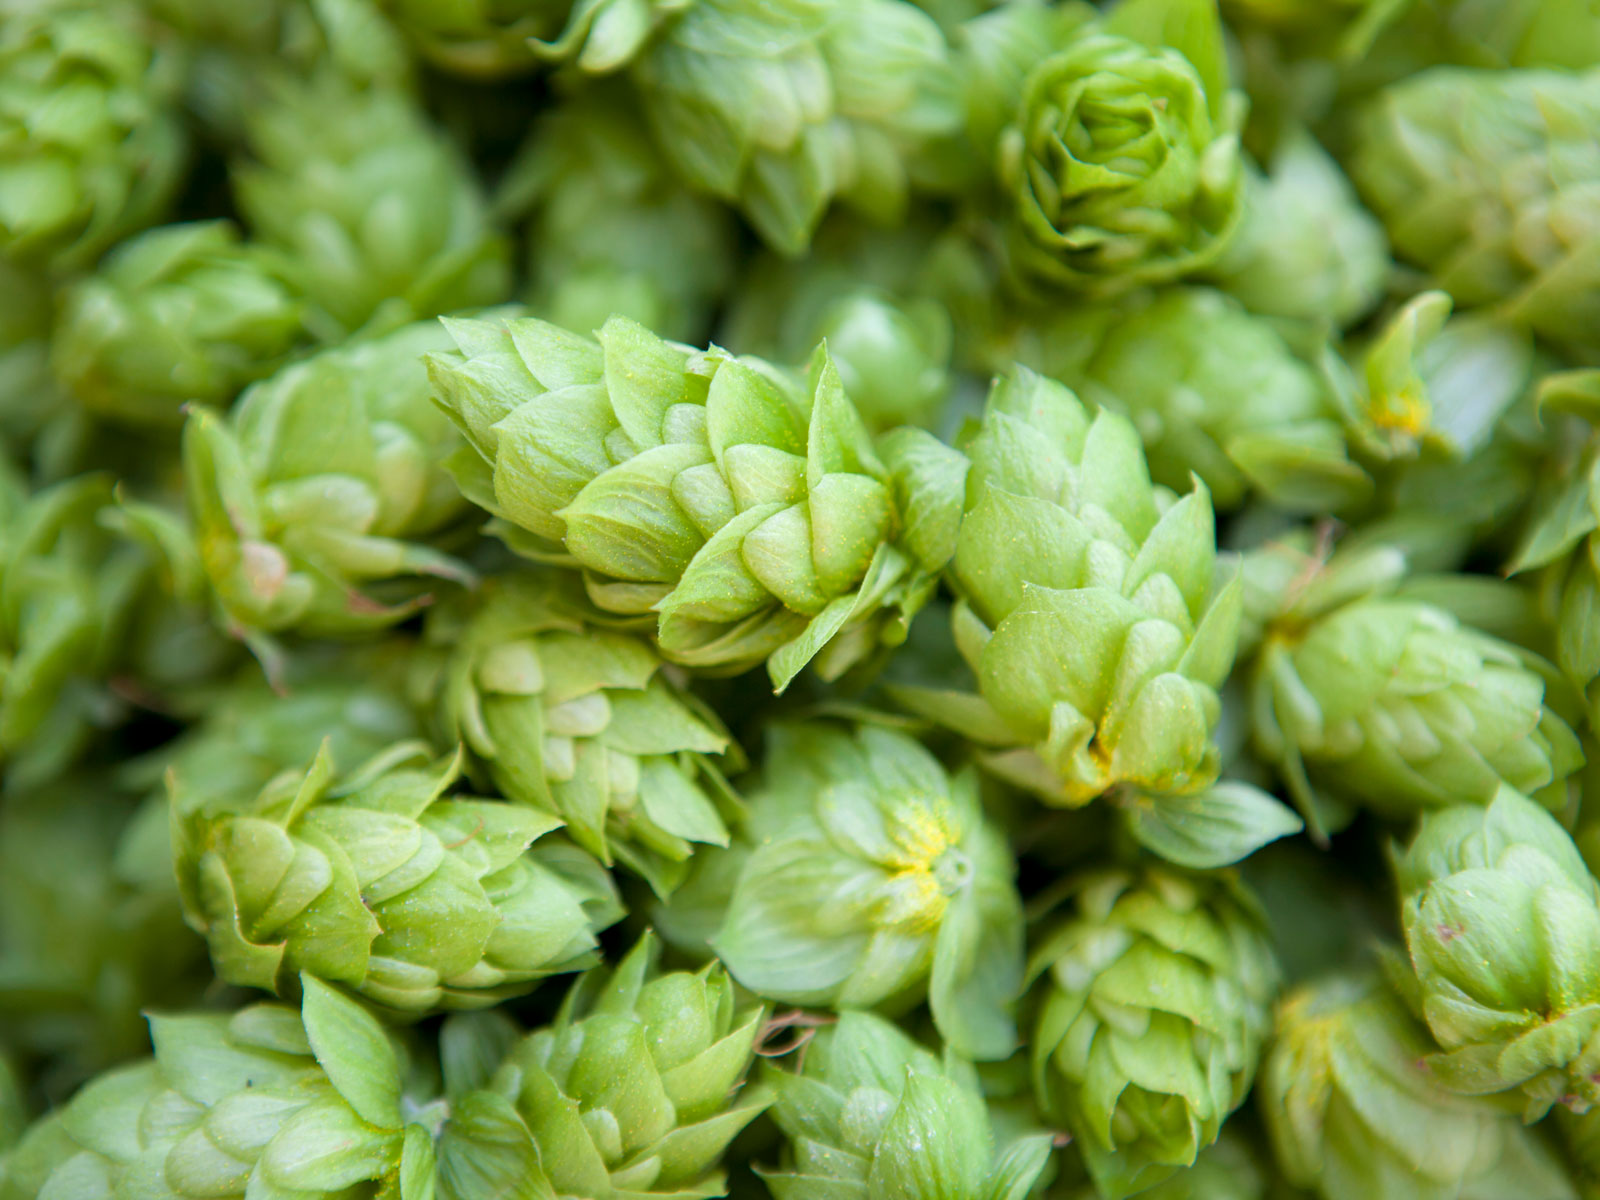 hops-year-round-FT-BLOG1119.jpg